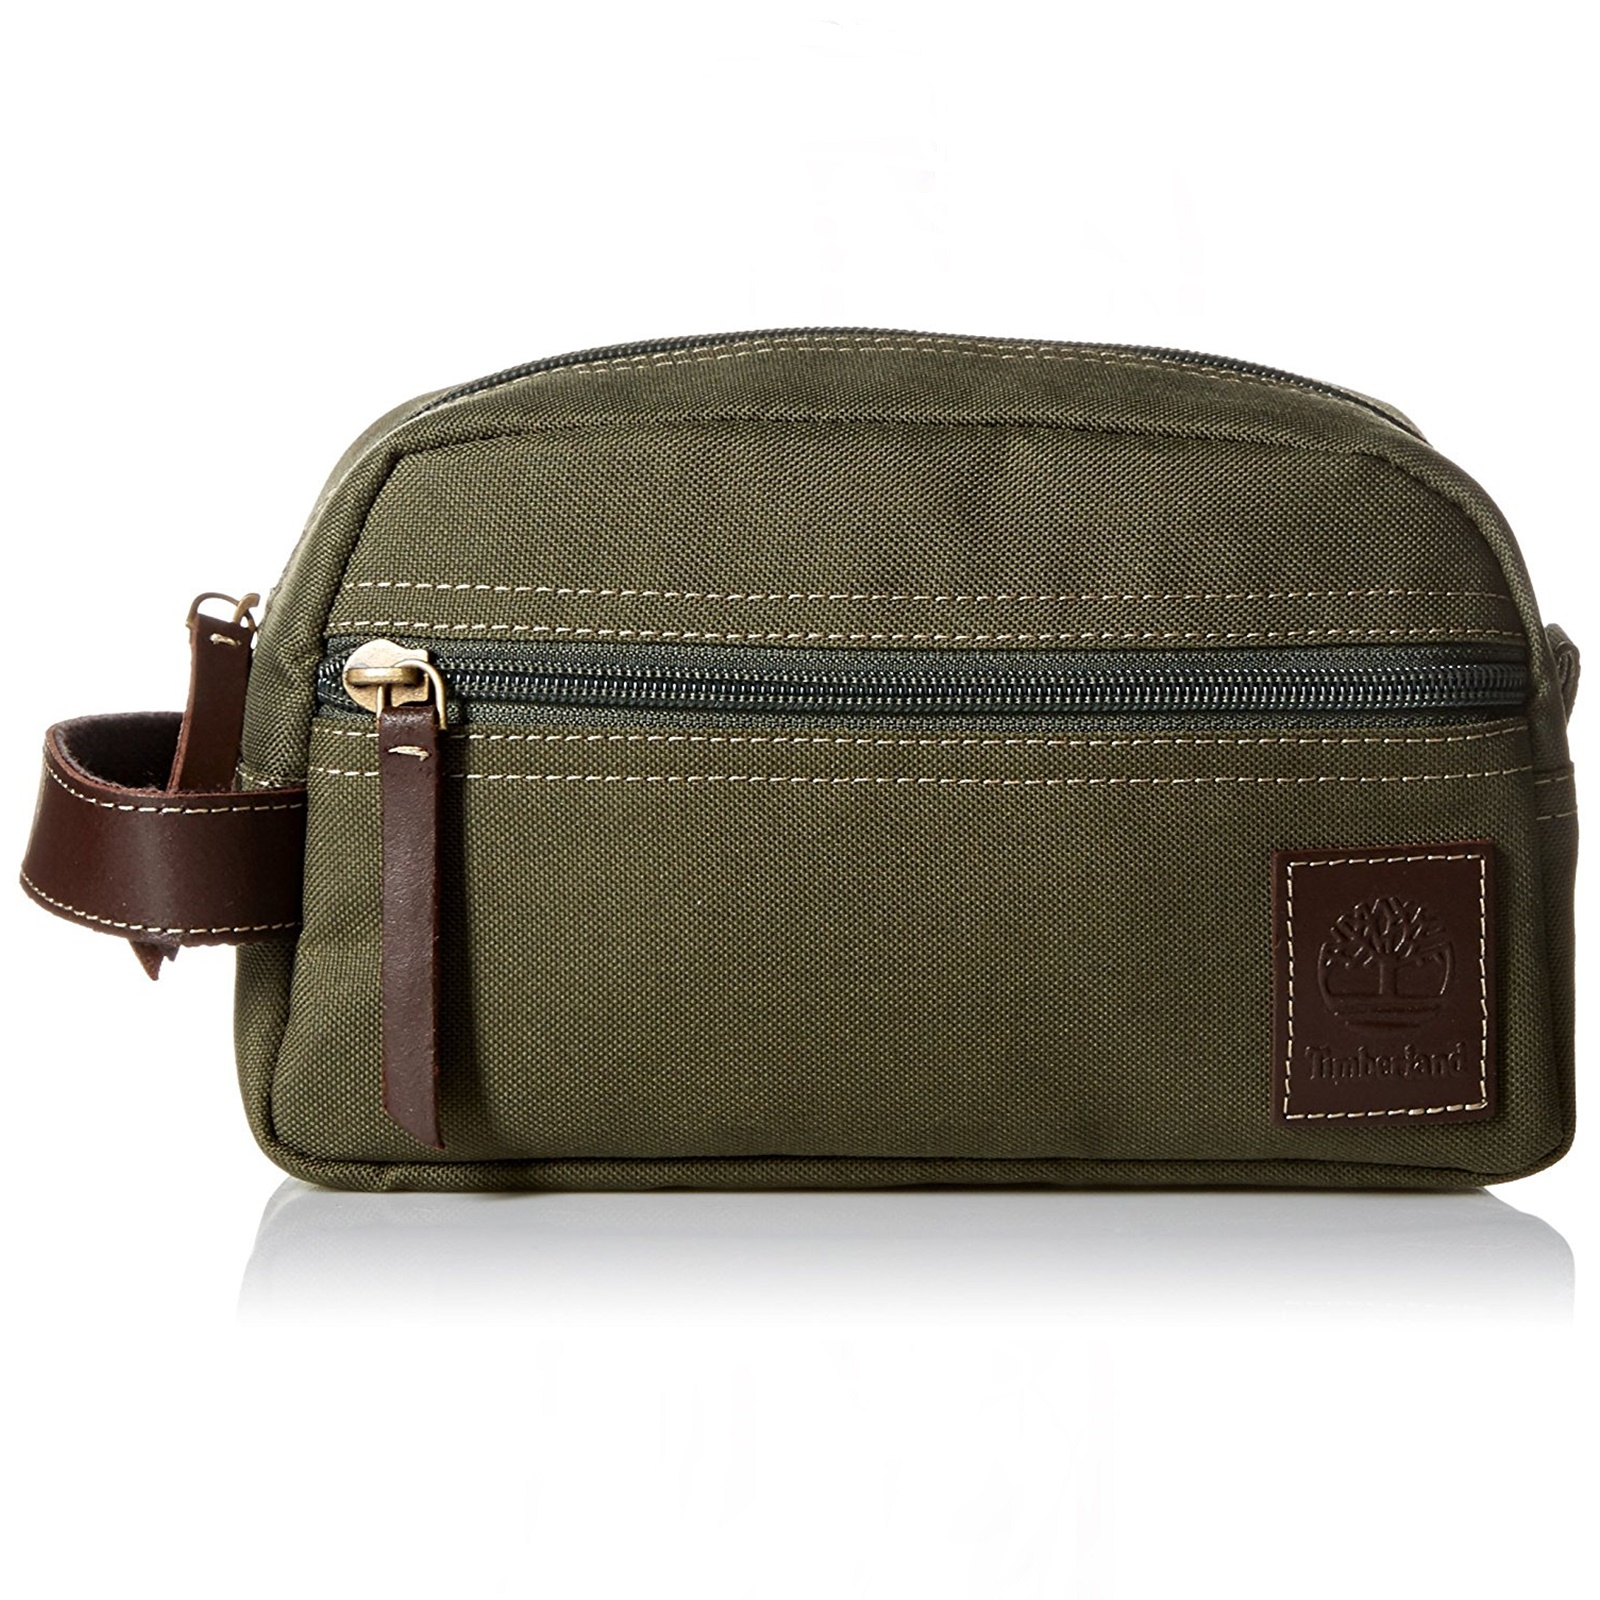 Men / Travel / Toiletry; Toiletry Bags Dapper. Sharp. Put-together. Stay fresh on-the-go with our men's leather toiletry bags keeping all your tools organized en route. Explore The Toiletry Guide. Item(s) Sort by. Sort by. Price (Low - High) Price (High - Low) Small Shave Bag. $